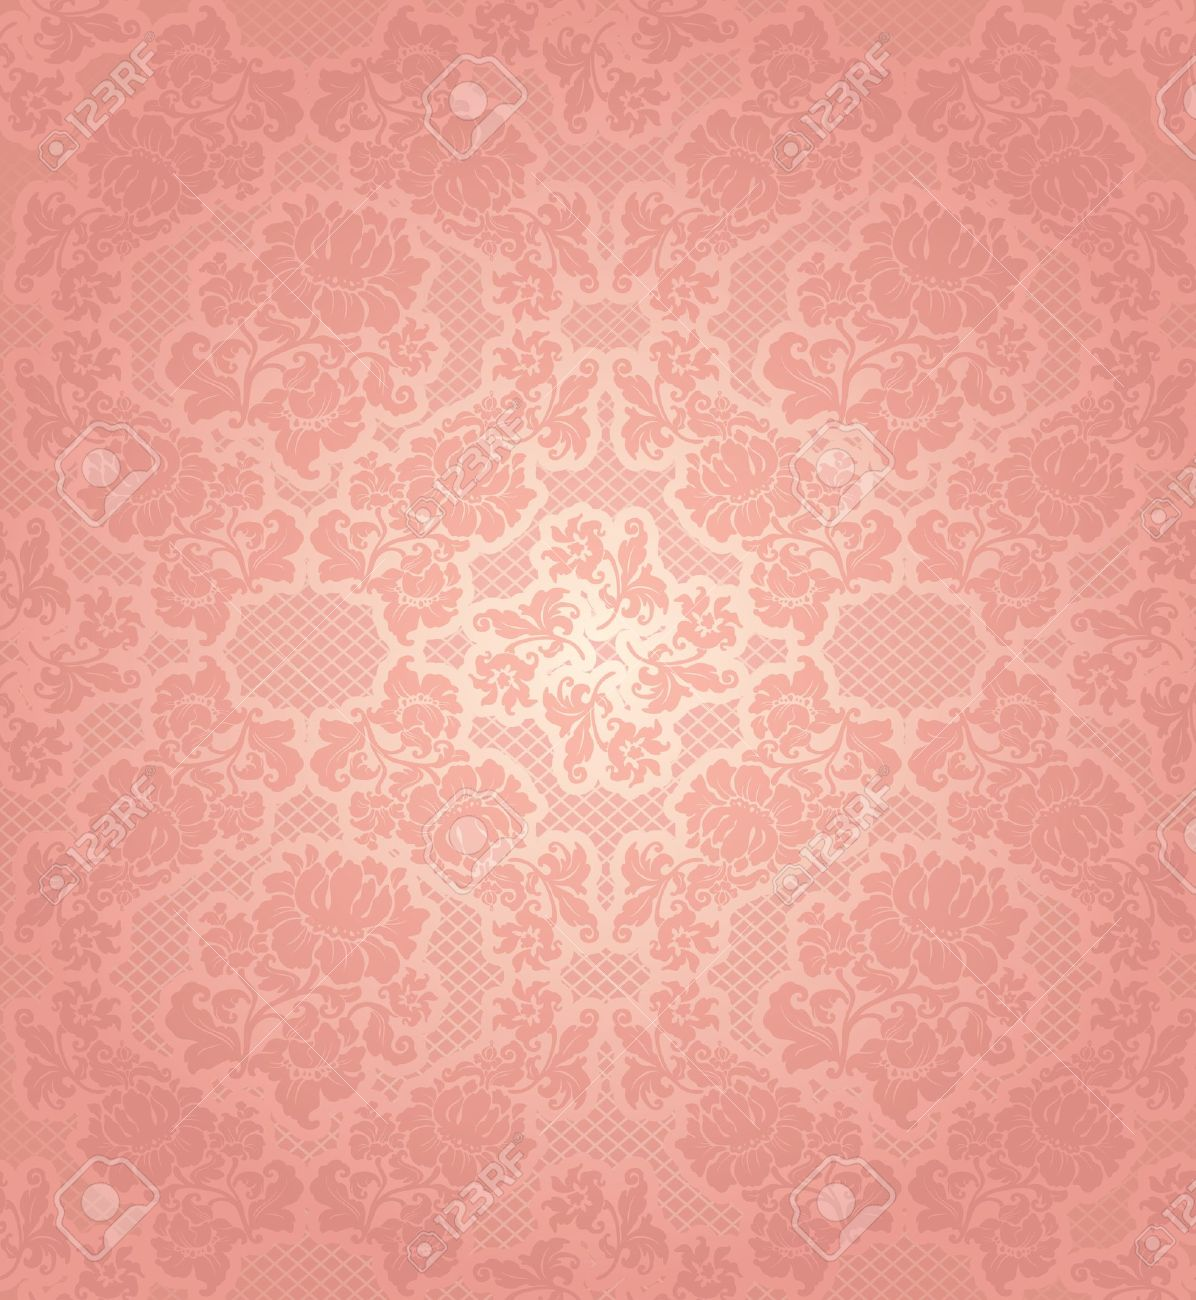 lace background ornamental pink flowers template royalty free